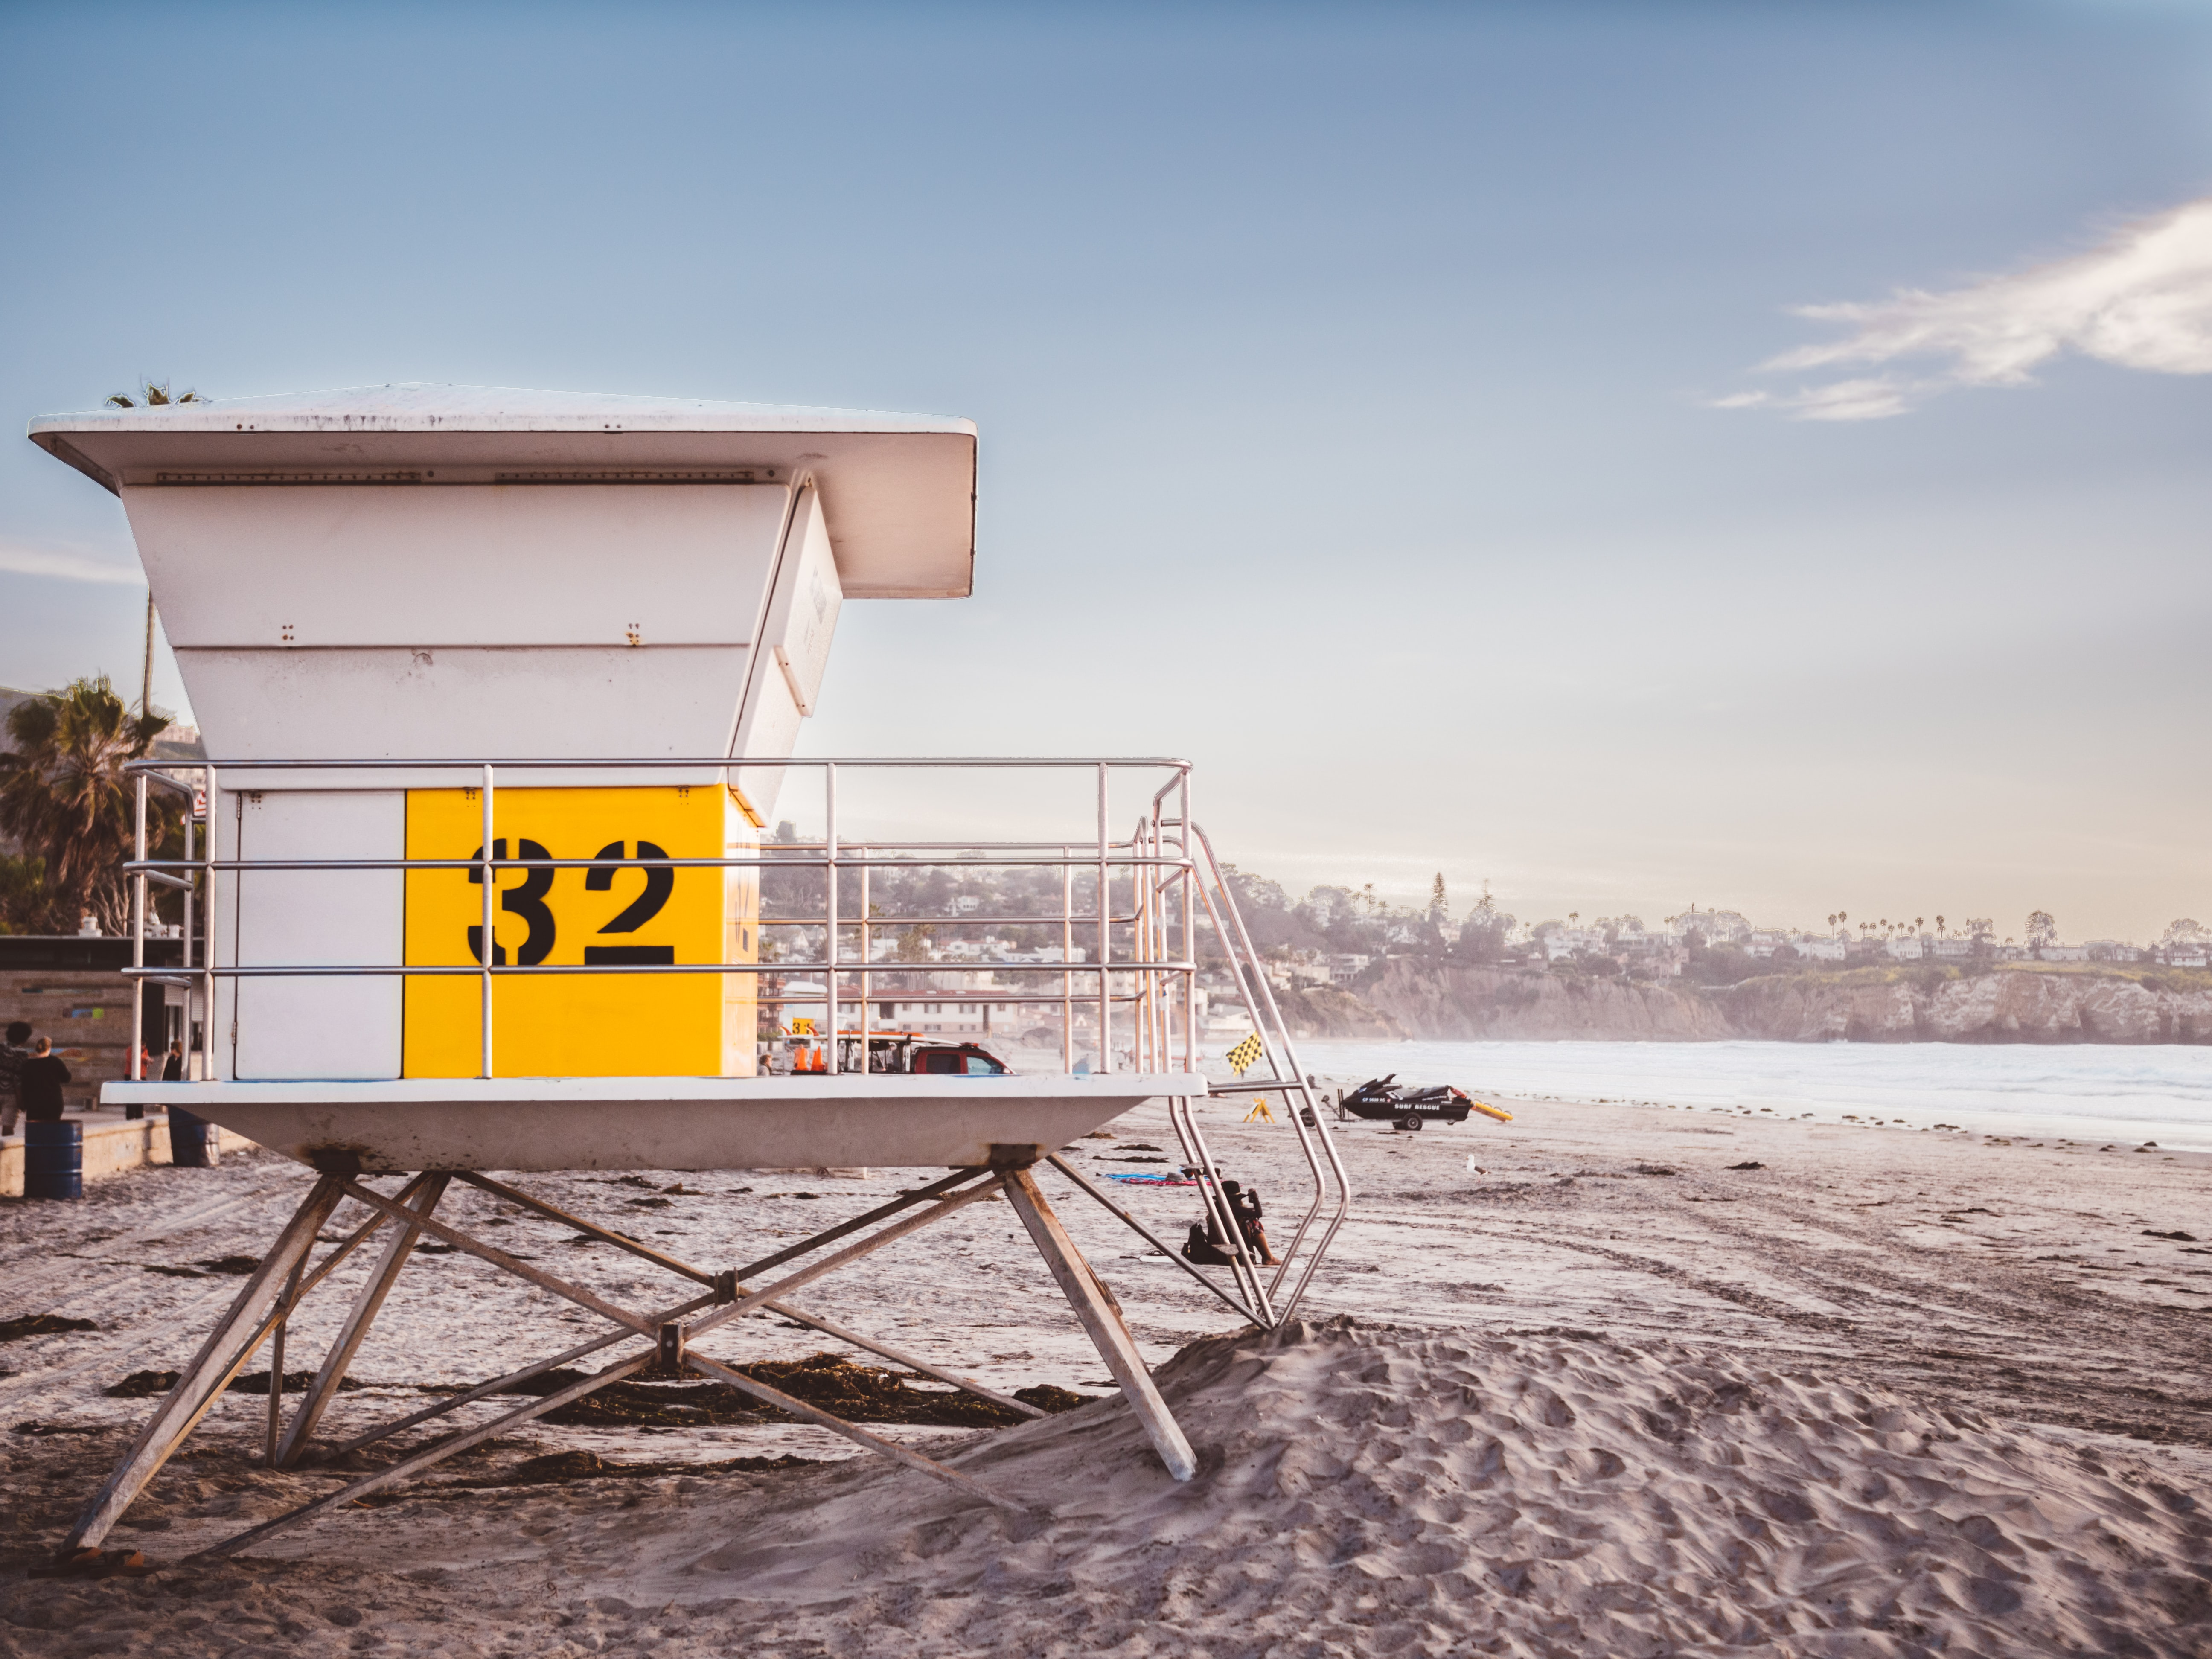 LIfeguard station number 32 at the la Jolla Shores sand Beach